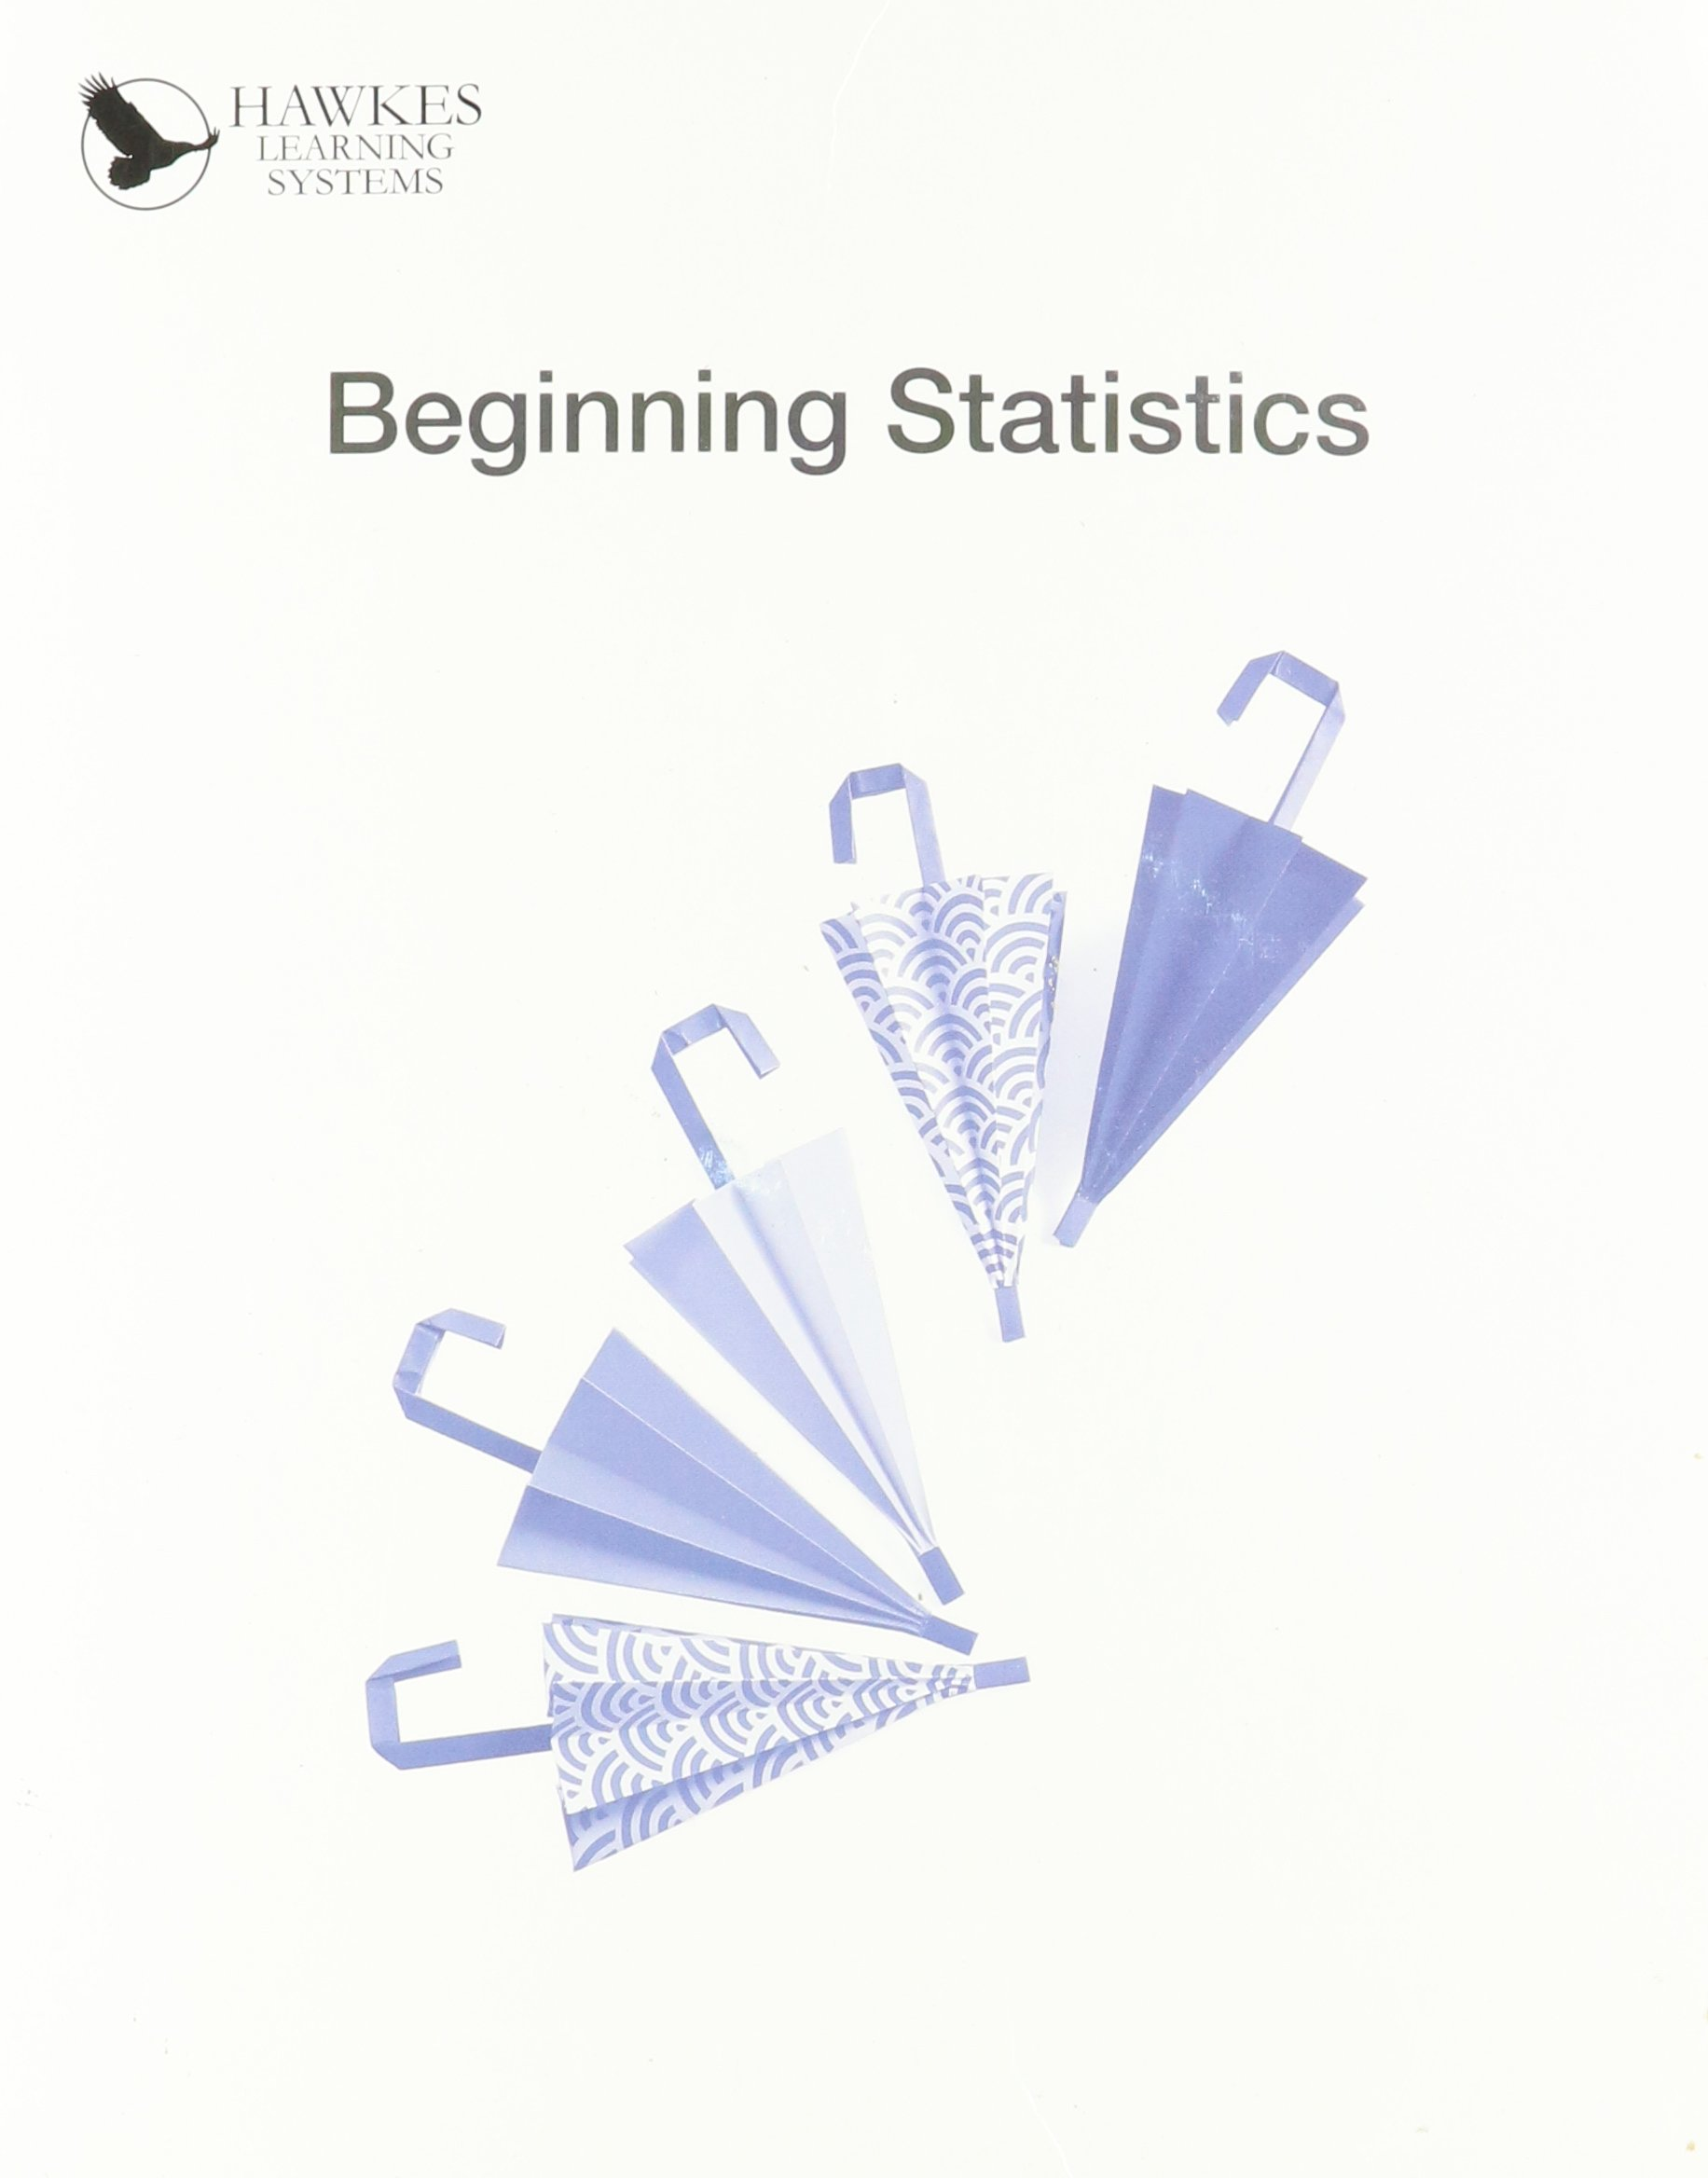 Beginning statistics carolyn warren 9781932628685 amazon books fandeluxe Choice Image